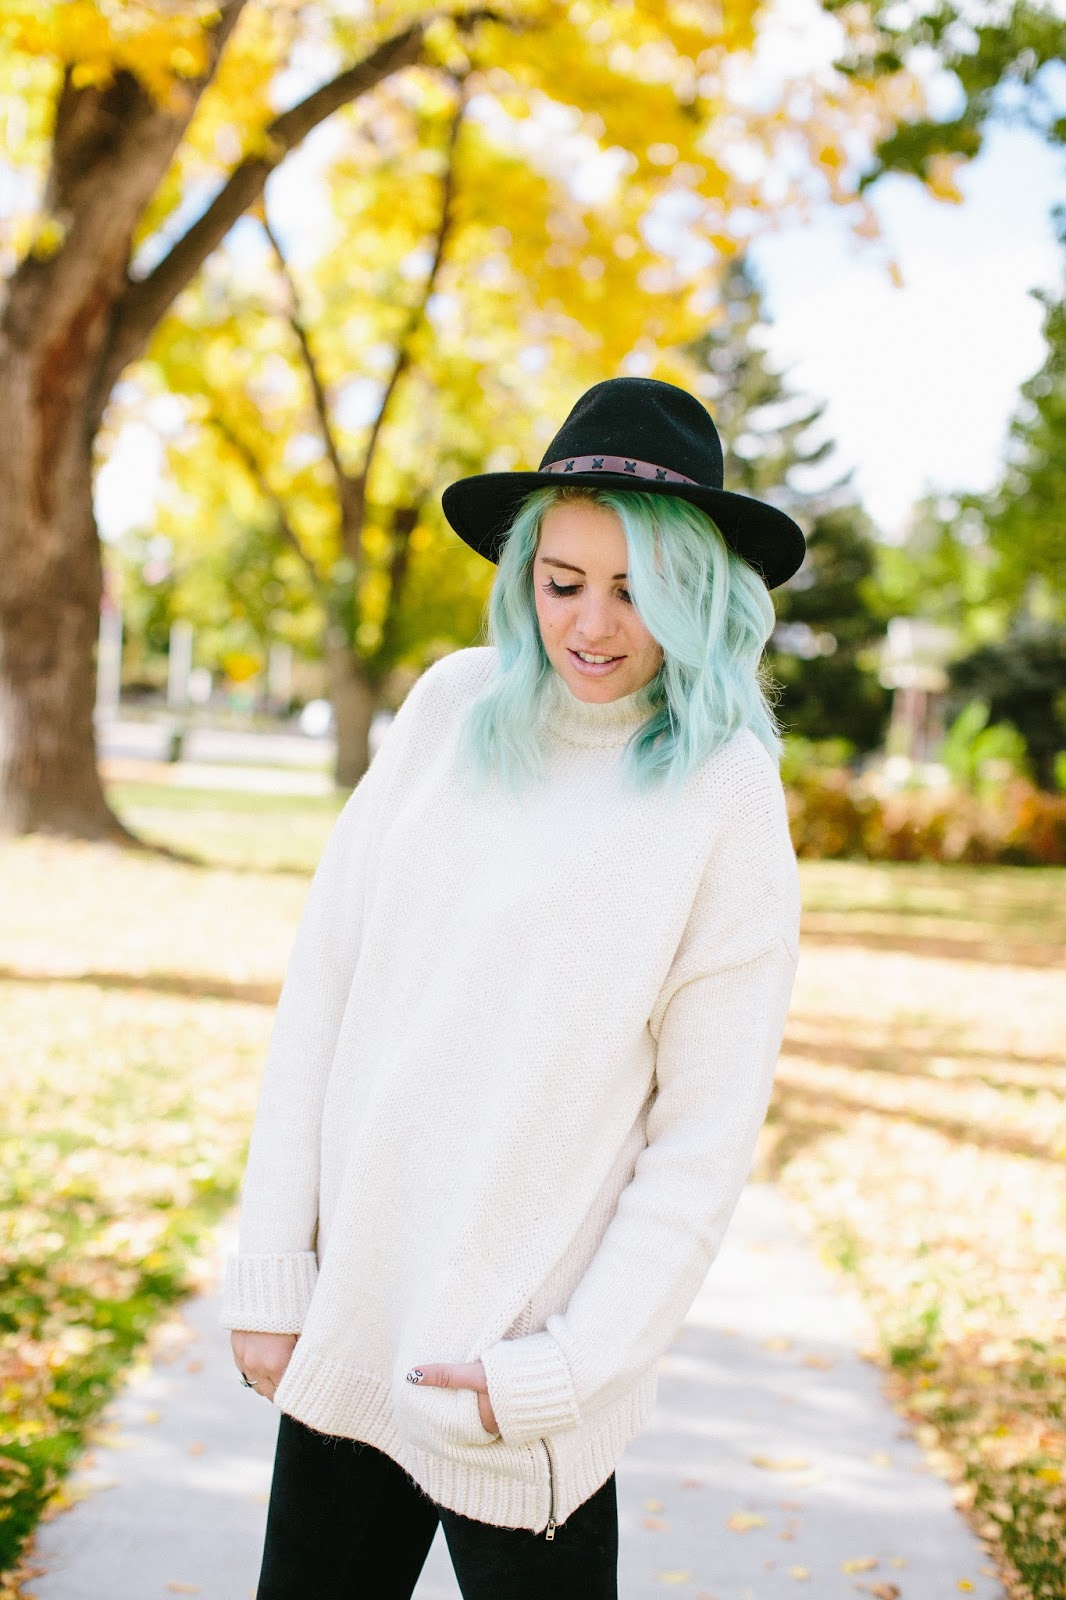 Sweater weather, Utah Fashion Blogger